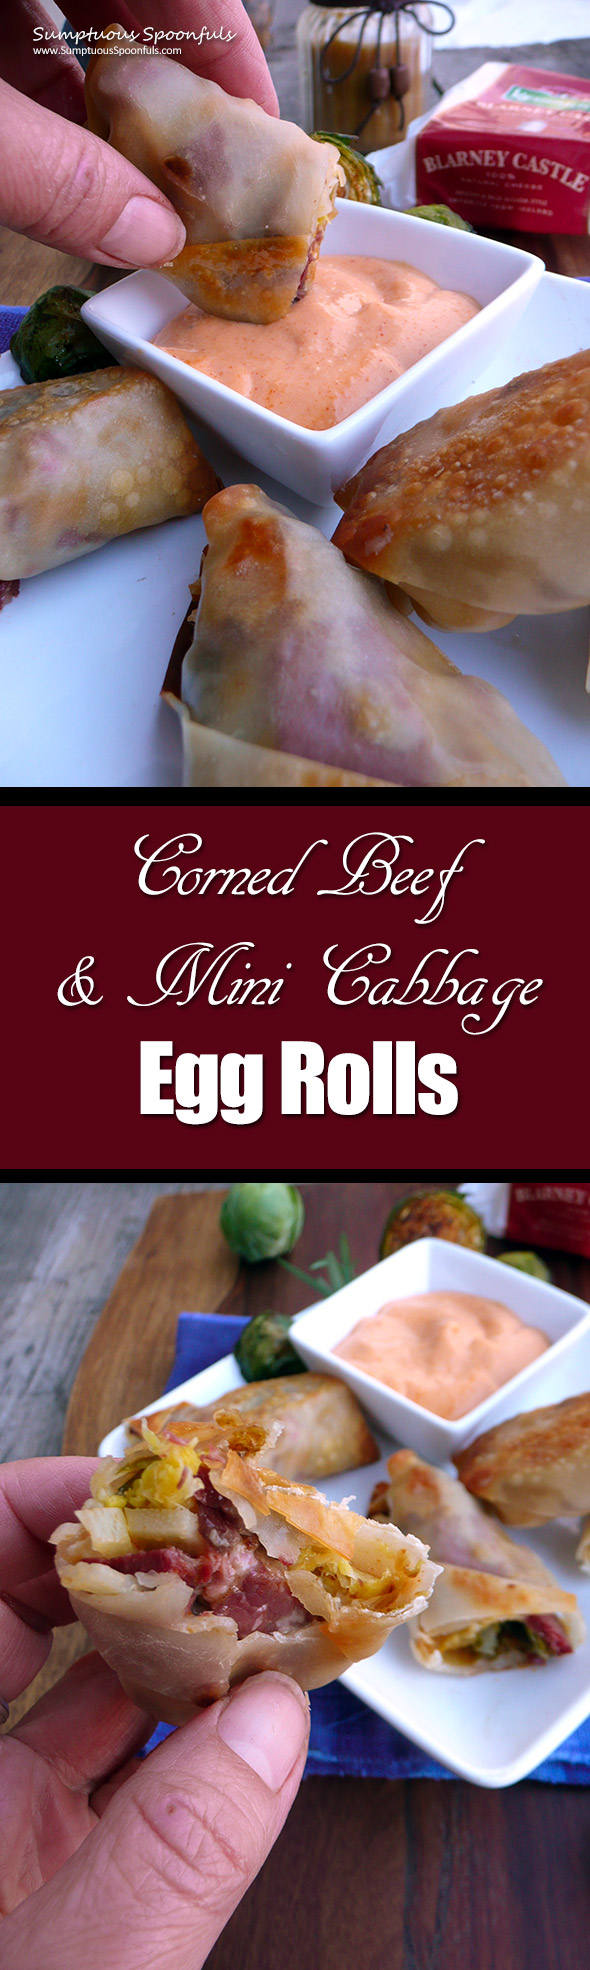 Corned Beef & Mini Cabbage Egg Rolls ~ Sumptuous Spoonfuls #BrusselSprouts #CornedBeef #recipe